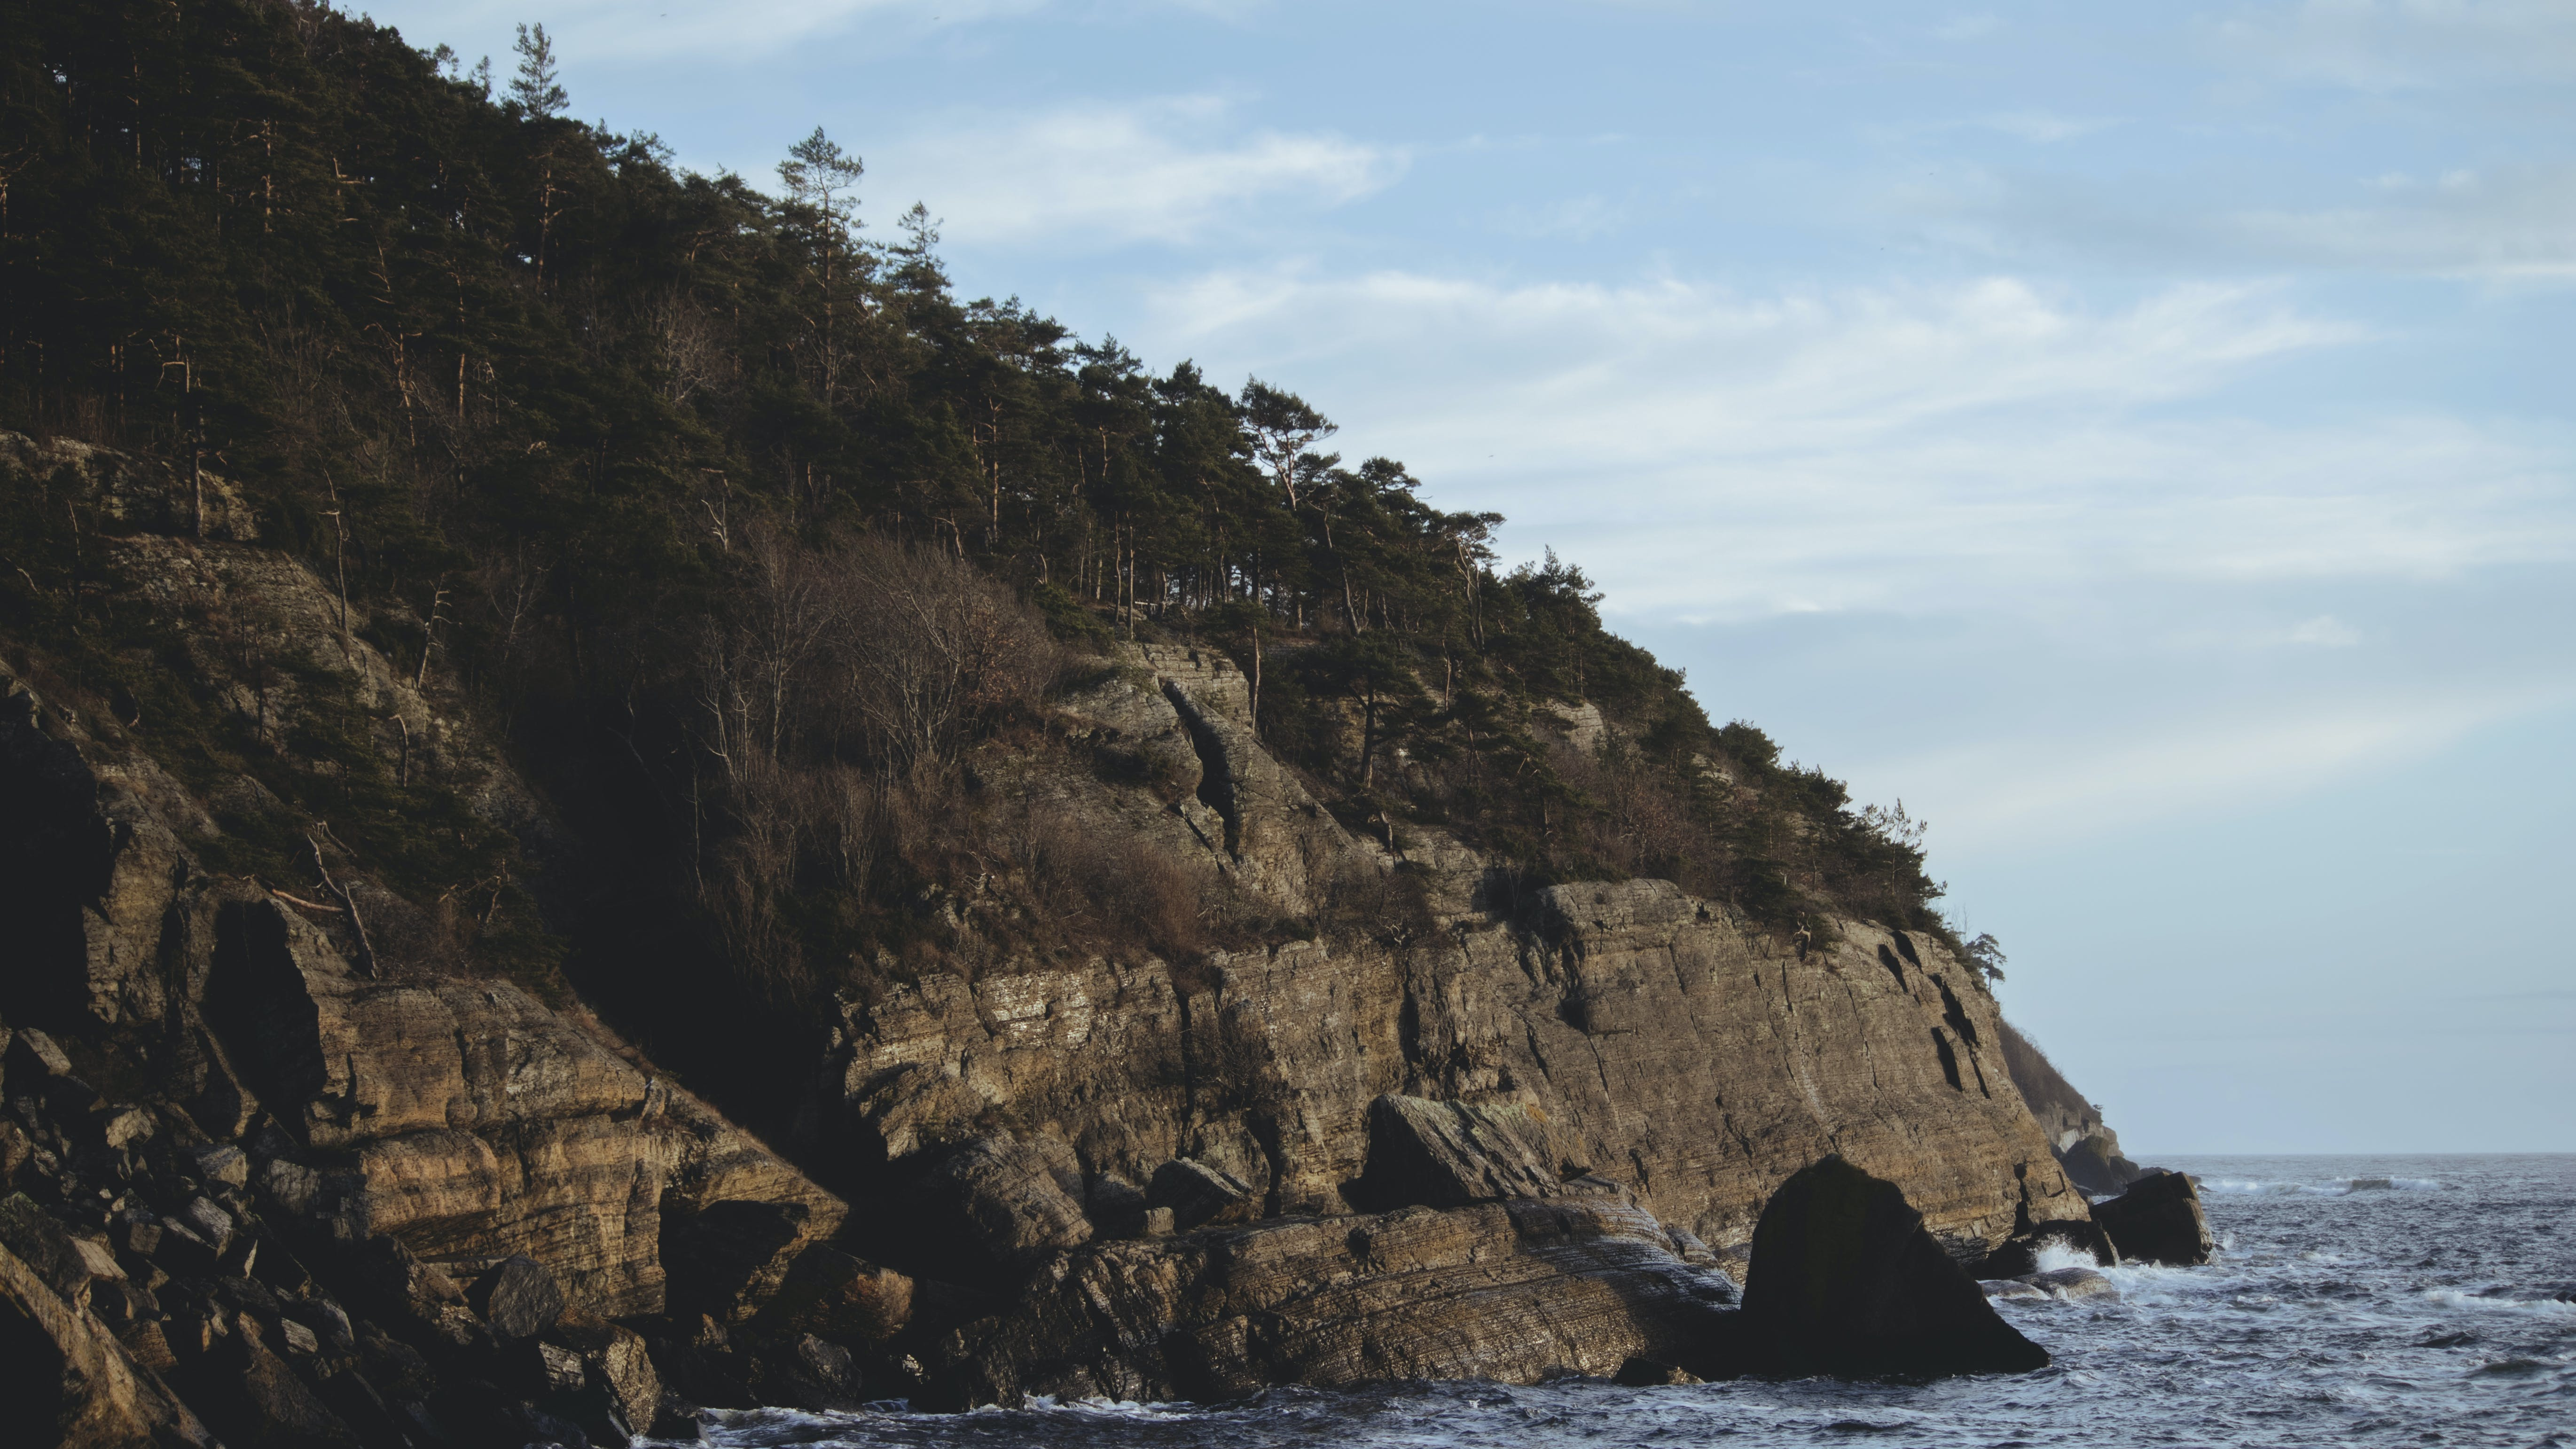 Landscape Photography of Cliff and Ocean